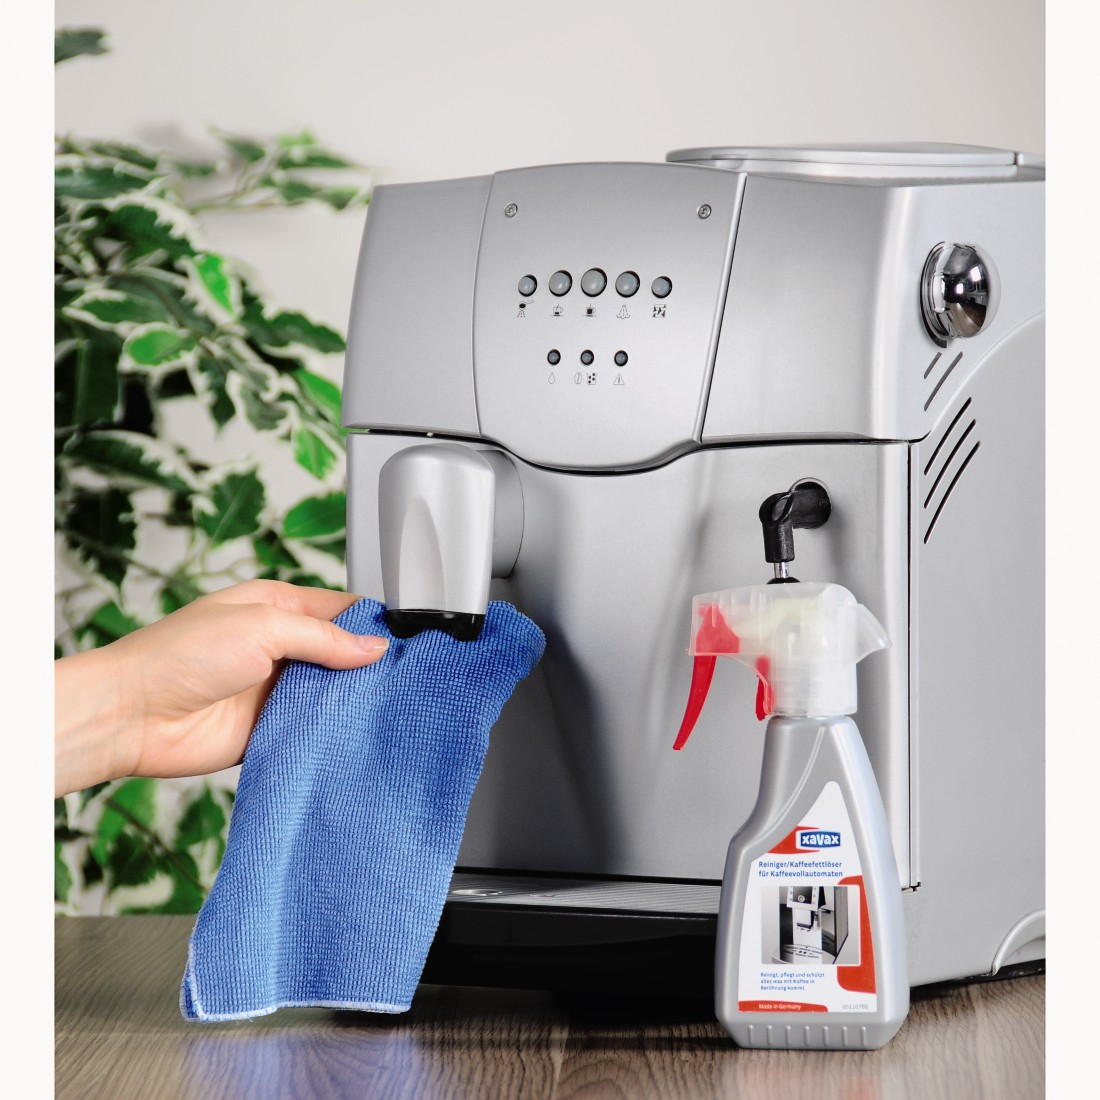 awx2 High-Res Appliance 2 - Xavax, Coffee Clean Special Cleaner for Fully Automatic Coffee Machines